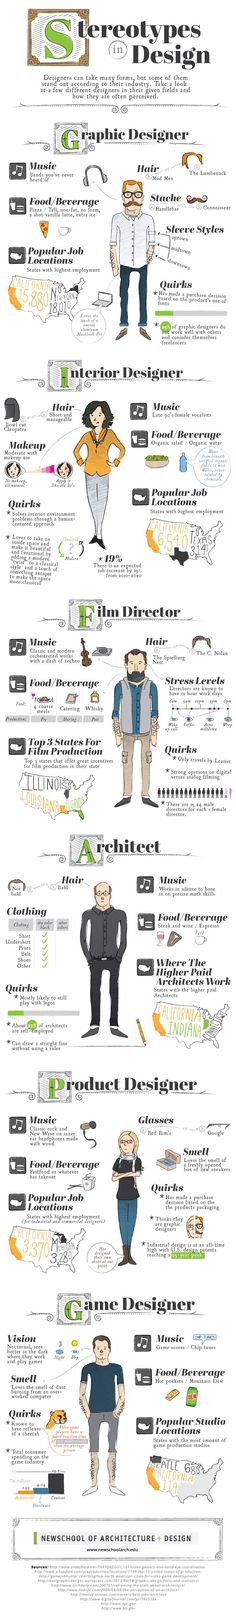 #Infographic : Stereotypes in Design | NewSchool of Architecture and #Design #in